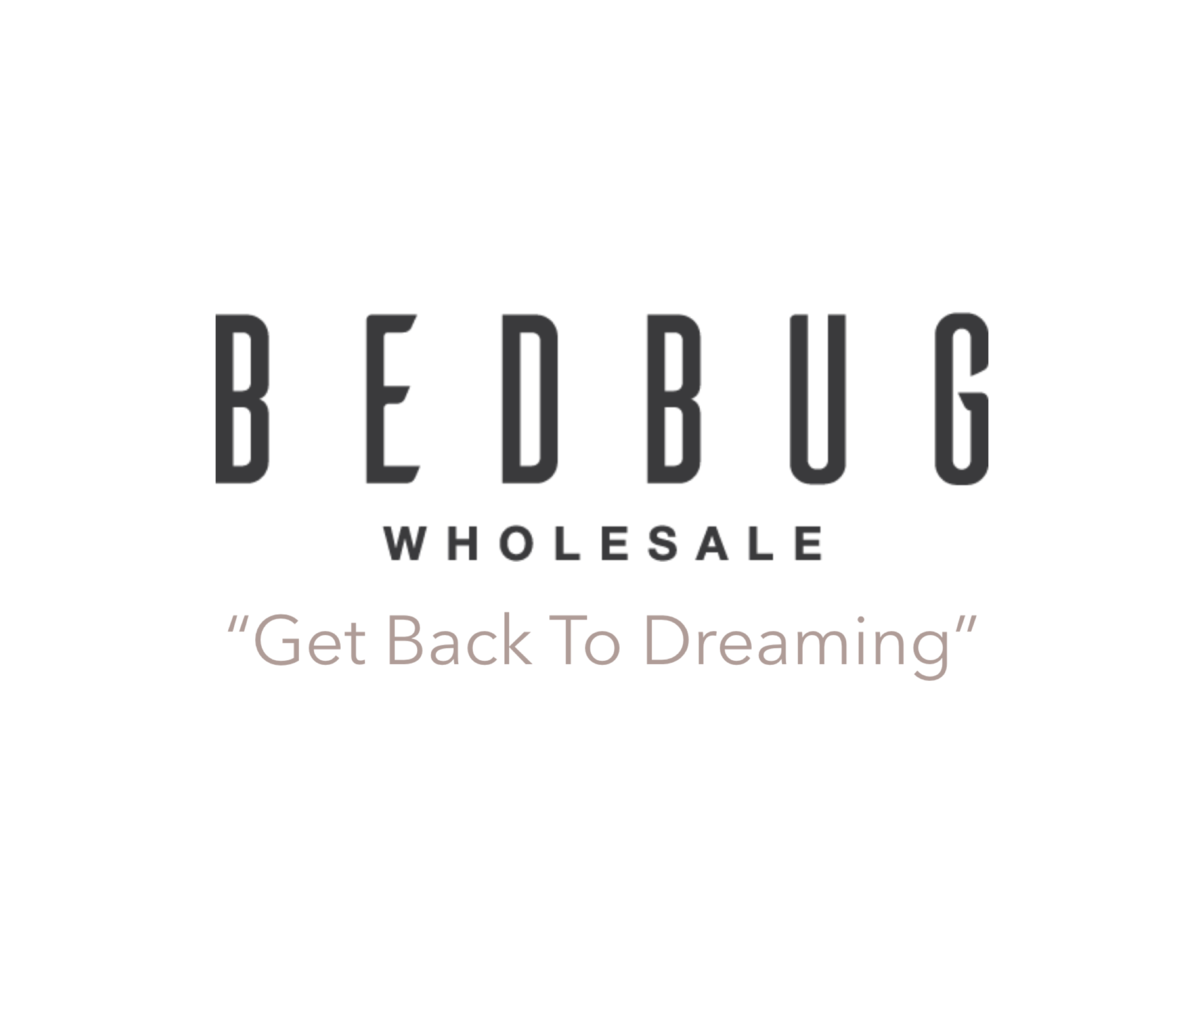 Bed Bug Wholesale Logo